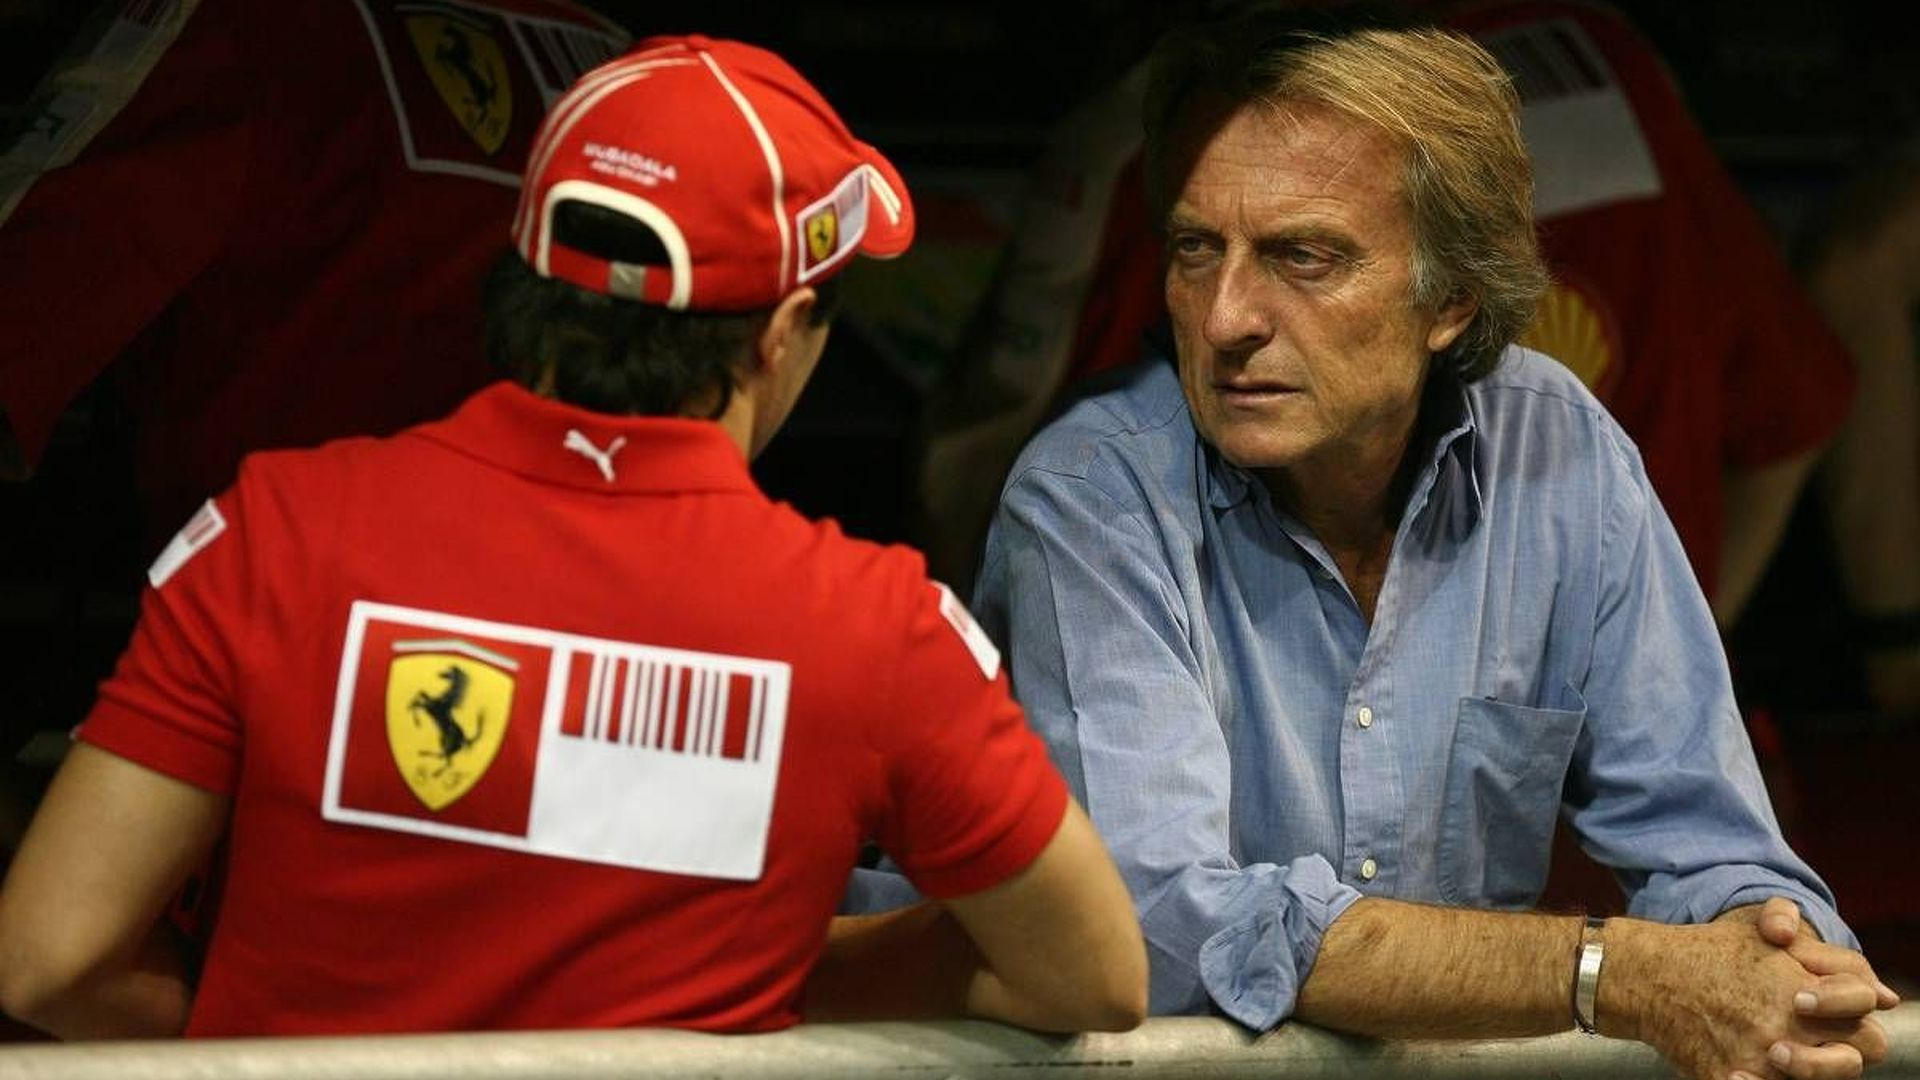 Massa is a 'number 1 driver' - Montezemolo